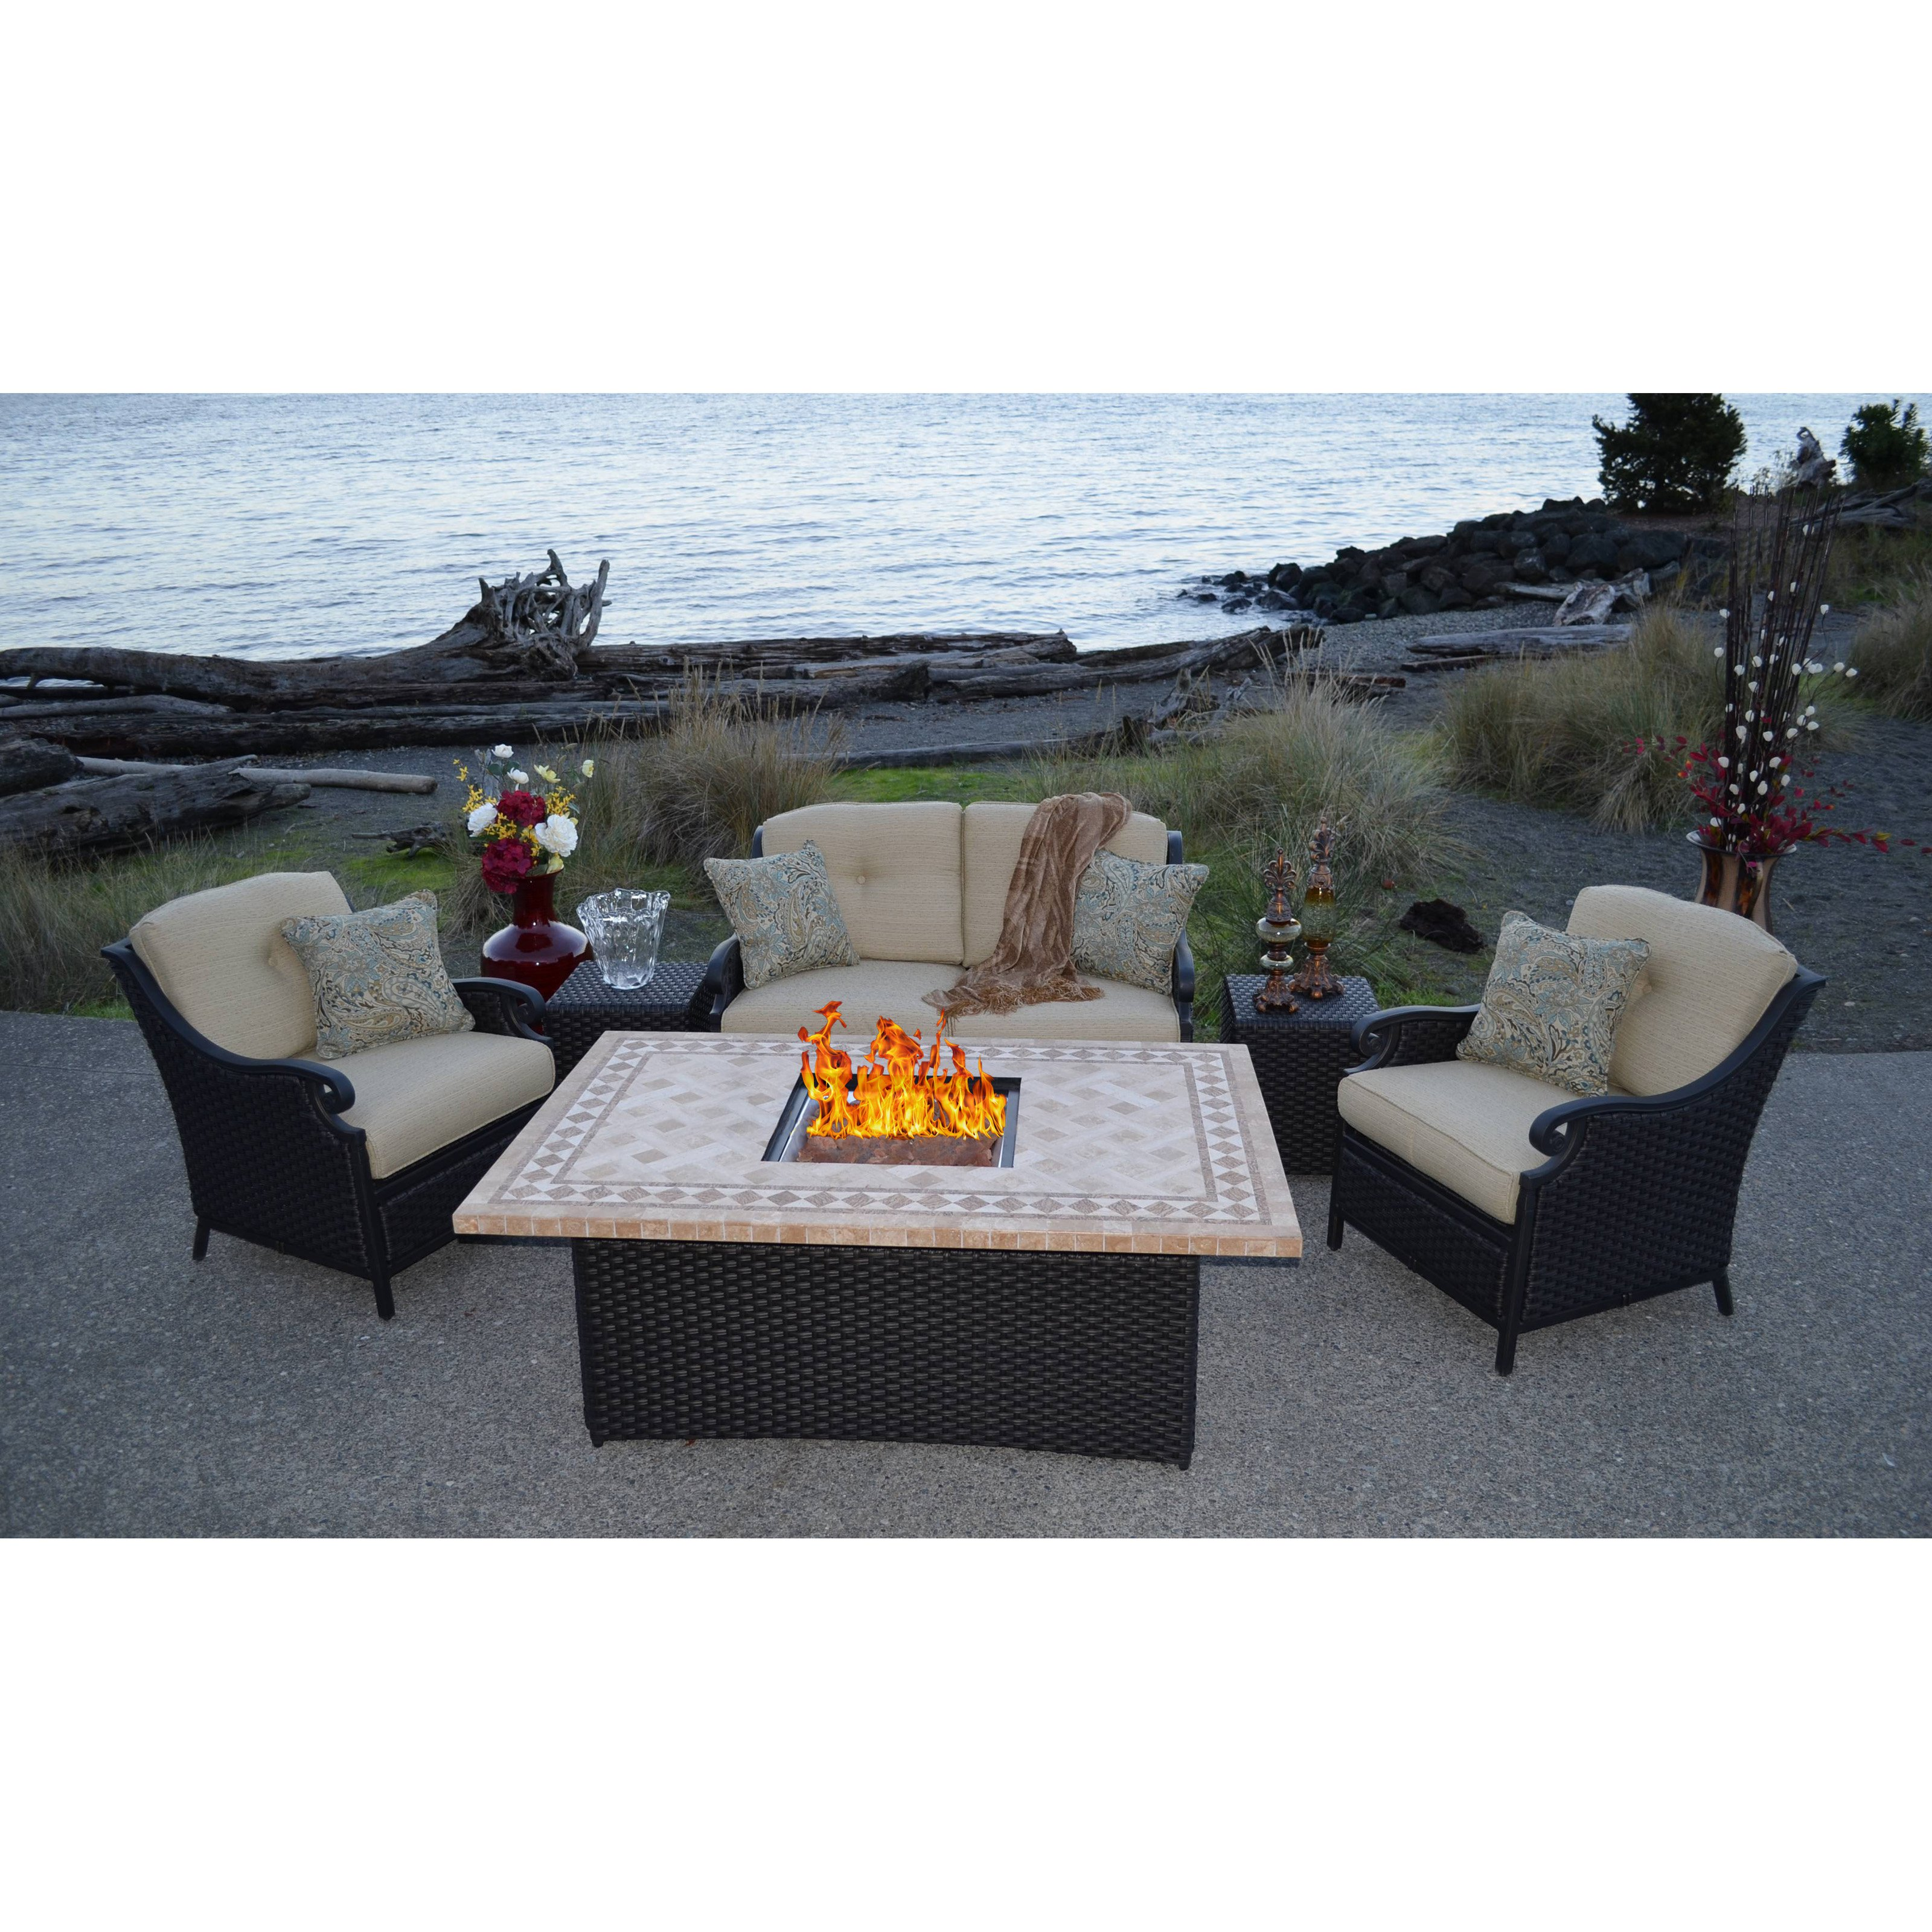 Outdoor Innovation Estrada 6 Piece Fire Pit Seating Group with Cushion